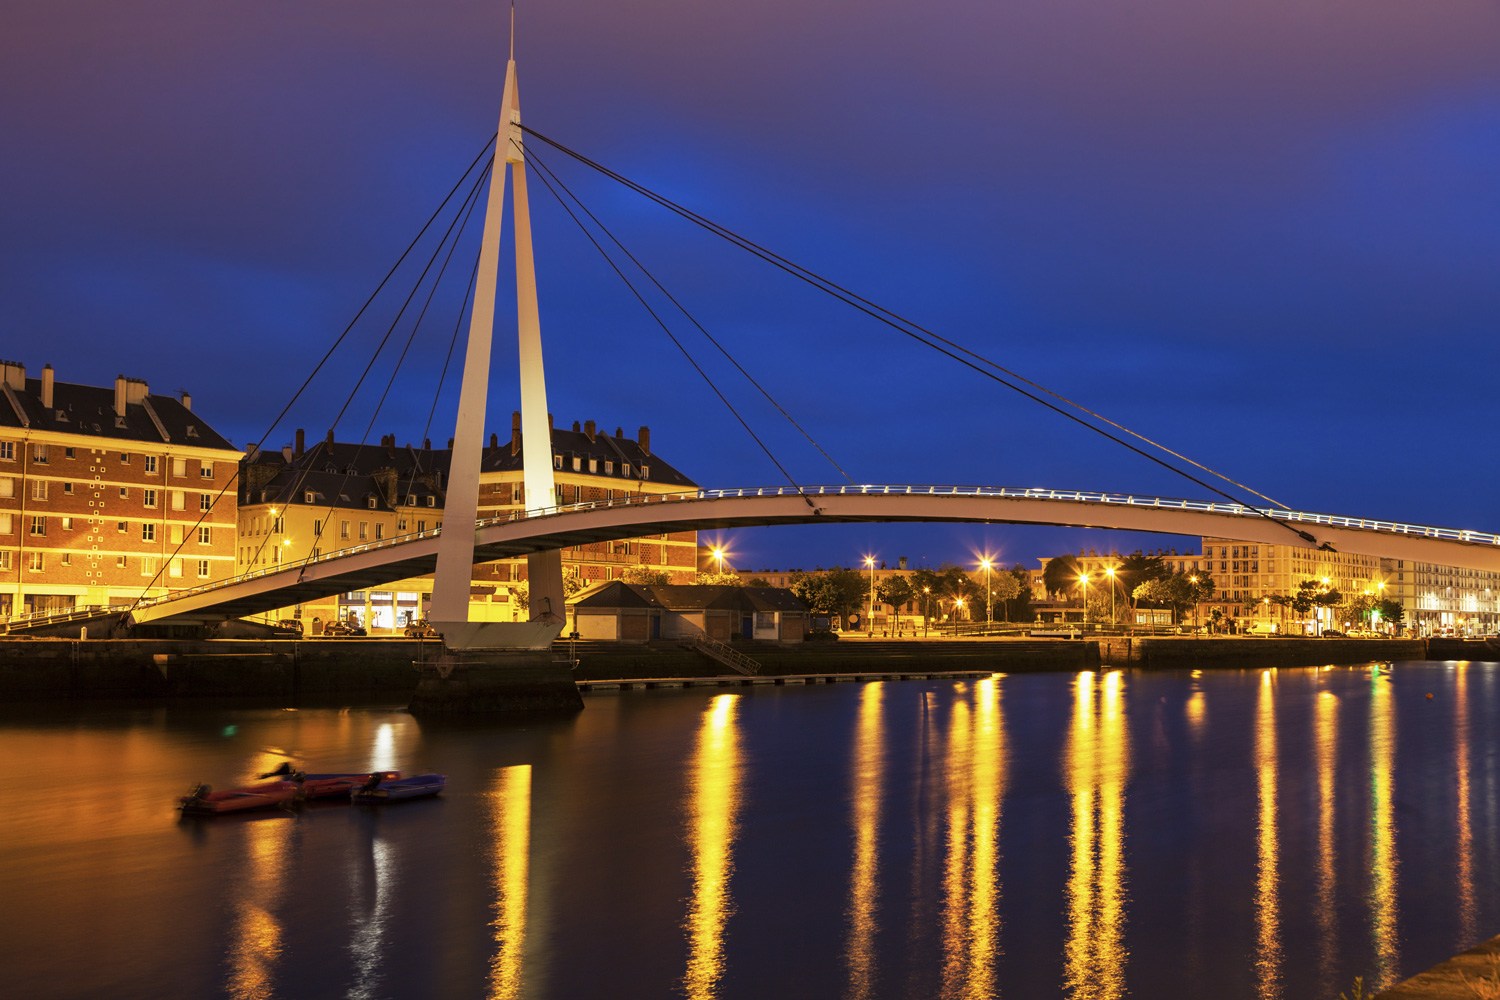 Pedestrian bridge in the center of Le Havre, Normandy, France